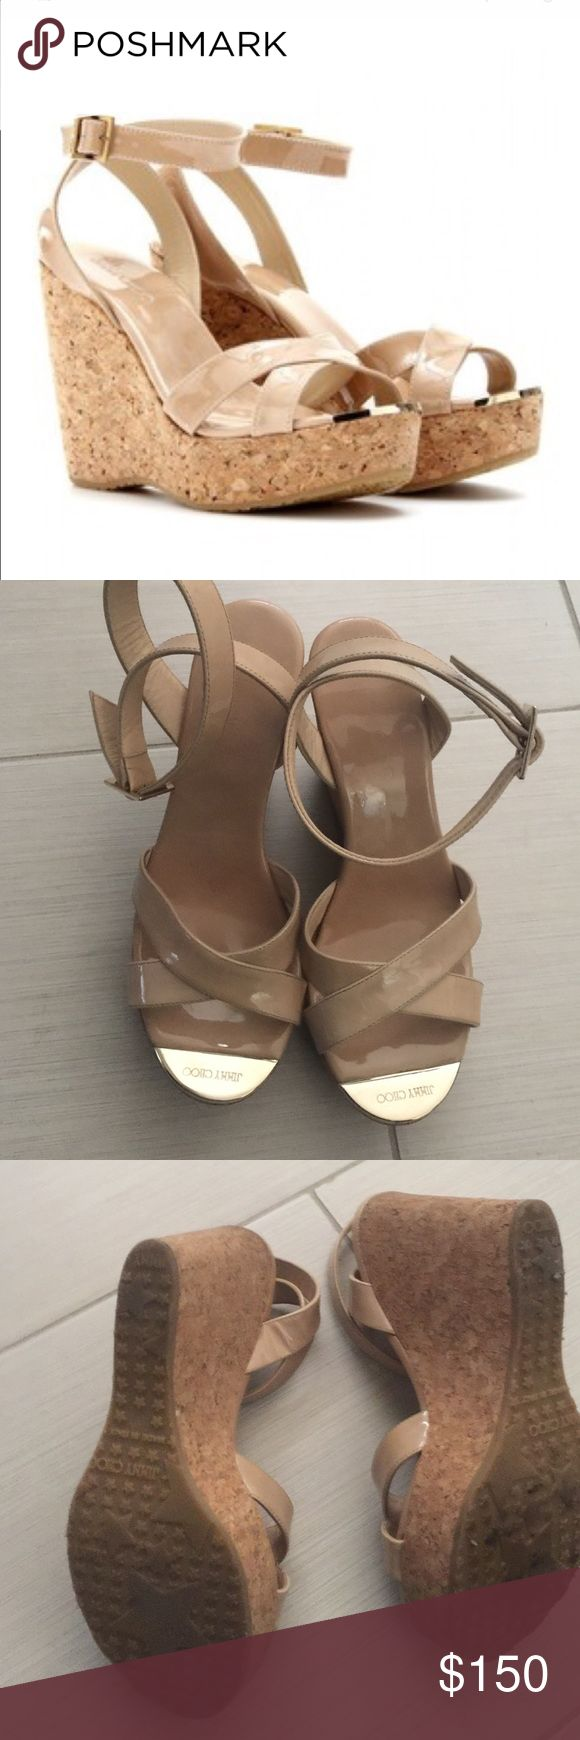 "Jimmy choo wedges patent leather Nude patent wedge. Cross cross straps over open toe with golden logo engraved plates     4 1/4"" wedge heel worn twice Jimmy Choo Shoes Wedges"